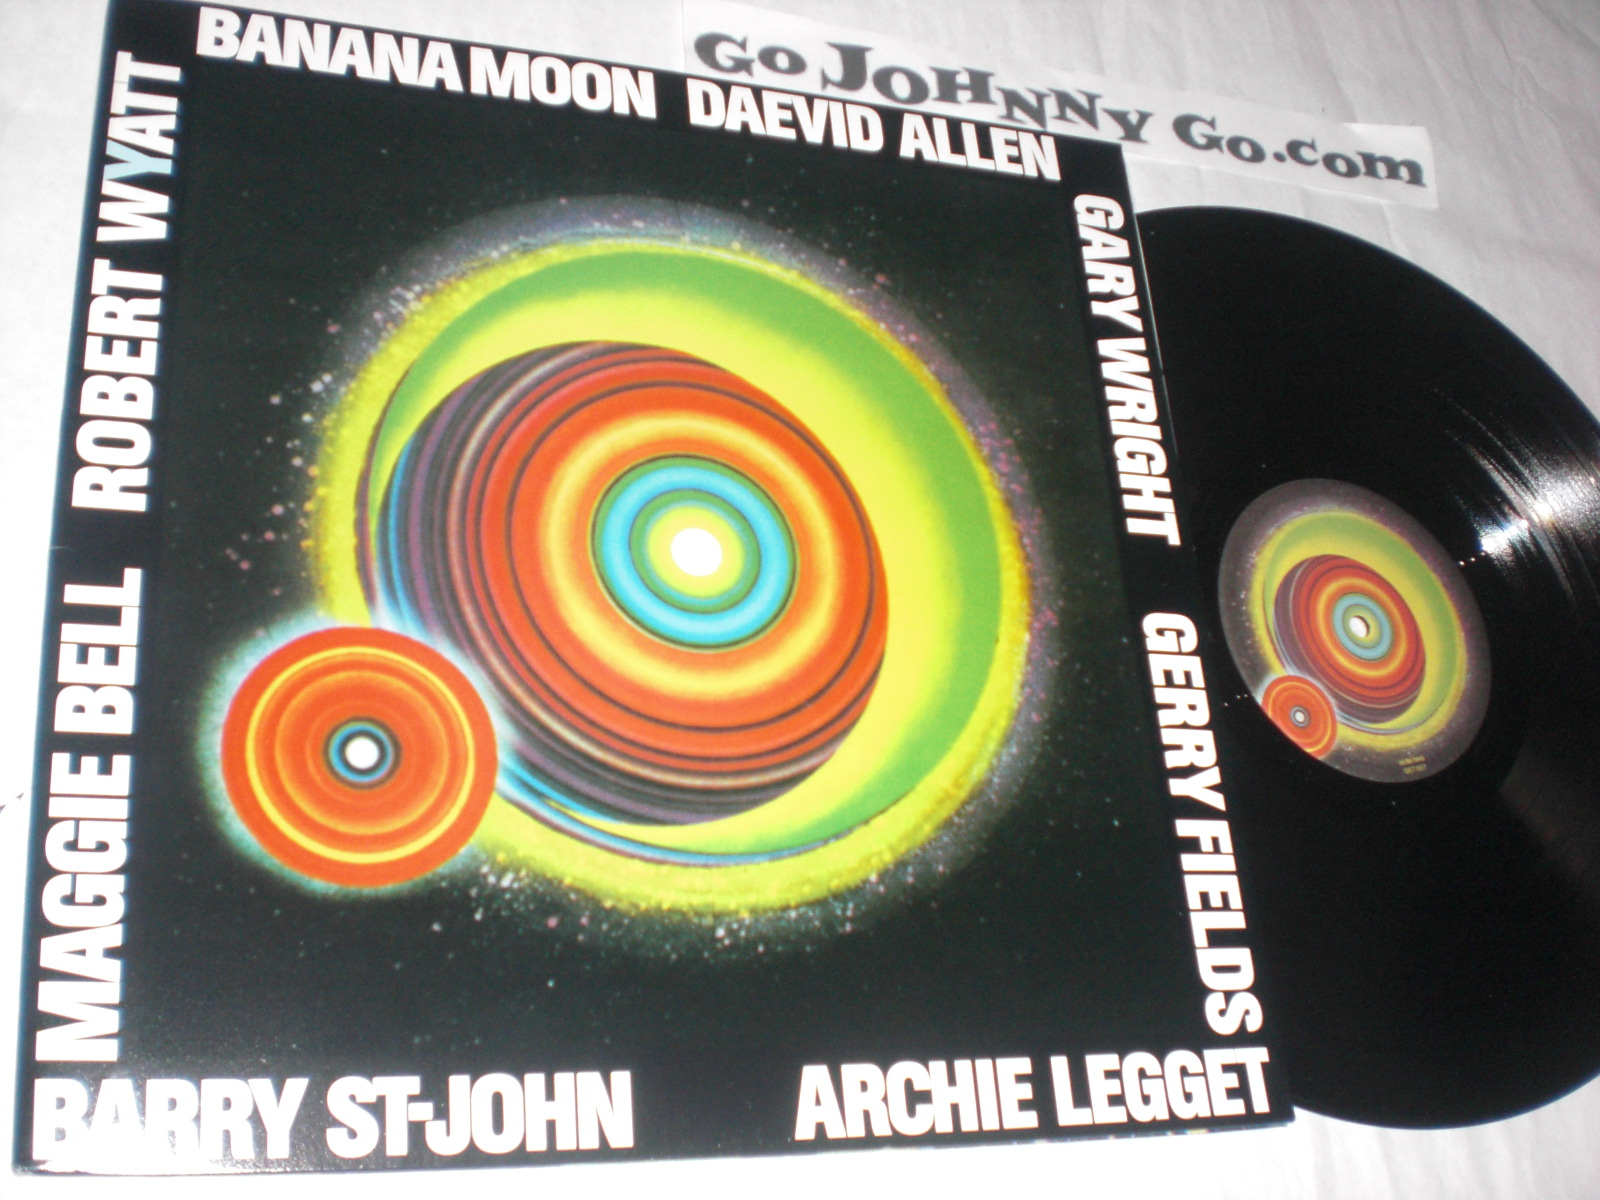 ALLEN, DAEVID - Banana Moon - 33T